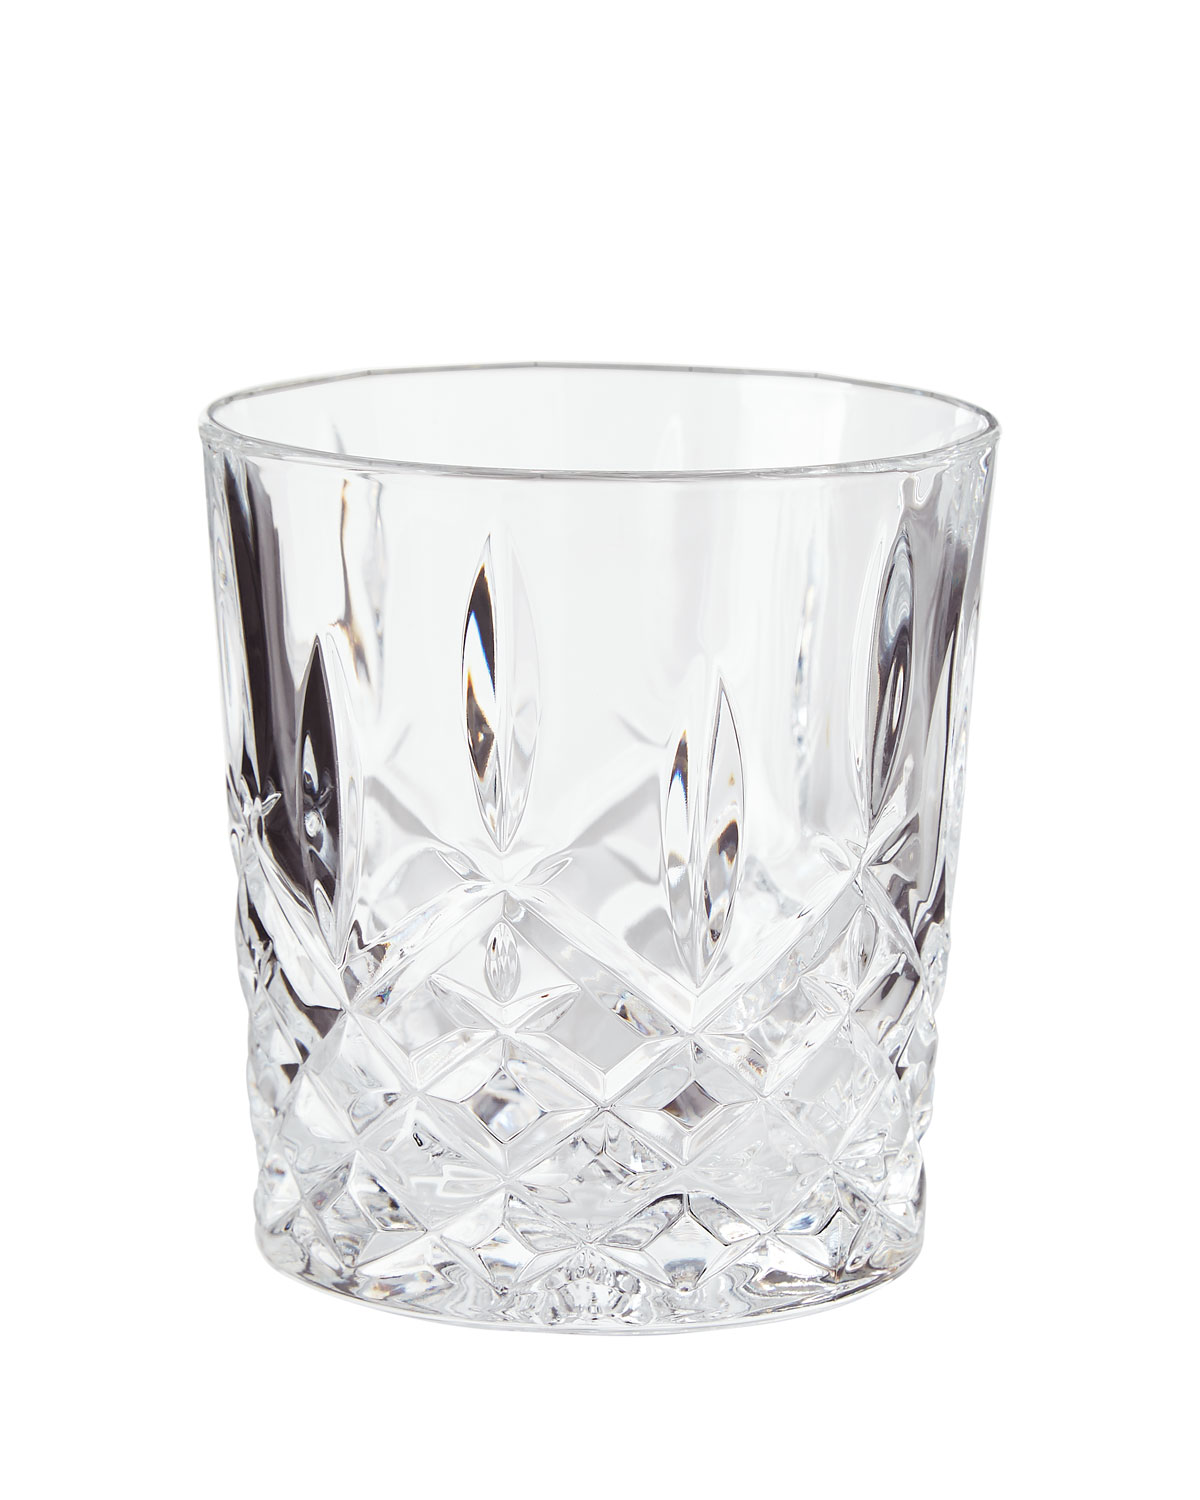 Wedding Gift Stores Nyc: Marquis By Waterford Markham Double Old-Fashioned Glasses